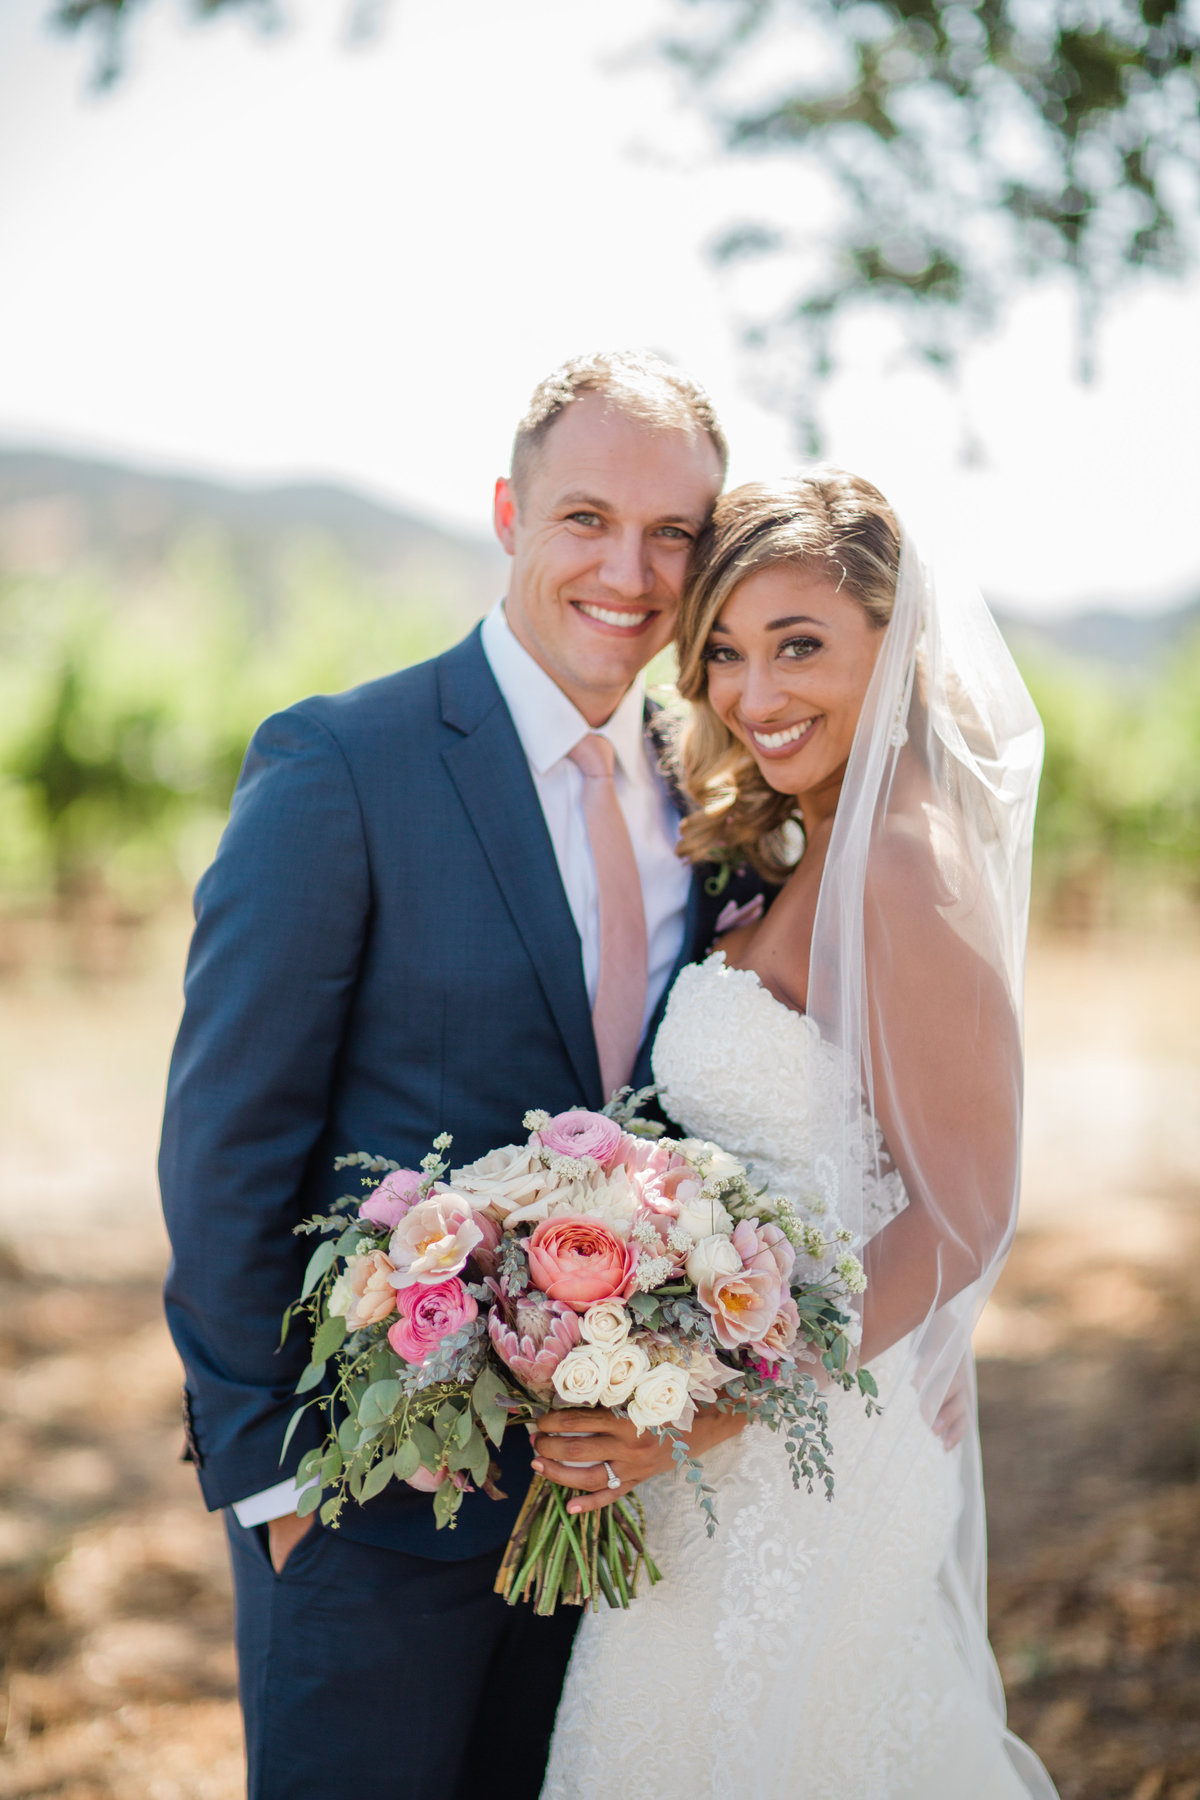 Jenna & Andrew's Oyster Ridge Wedding | Paso Robles Wedding Photographer | Katie Schoepflin Photography450